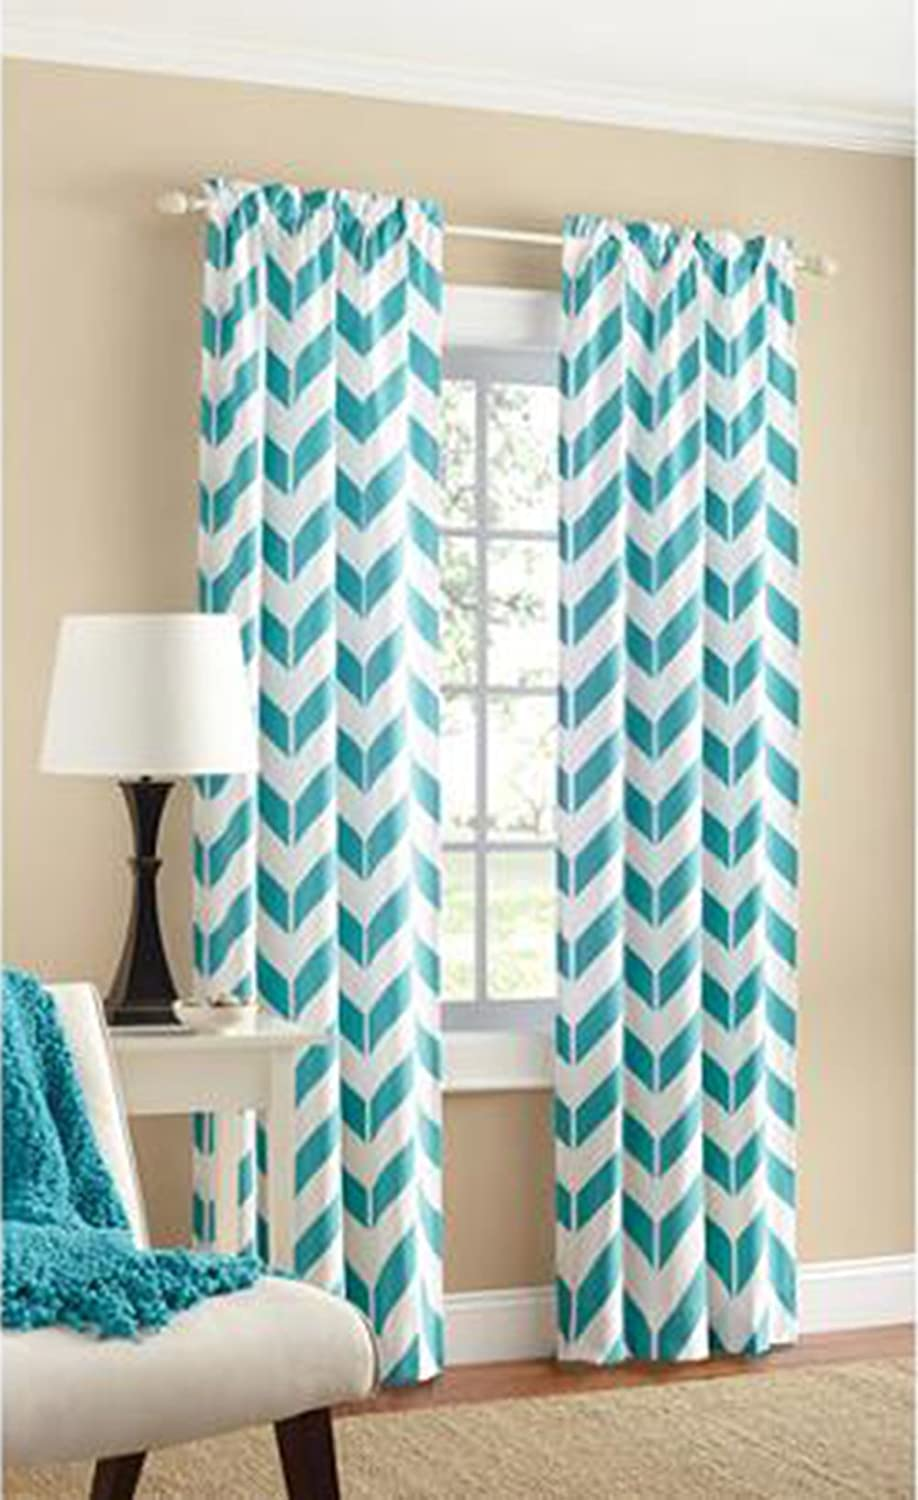 Yellow chevron kitchen curtains - Mainstay Yellow Chevron Curtains Teal Chevron Panel Pair Two Panels 84 By Mainstay Amazon In